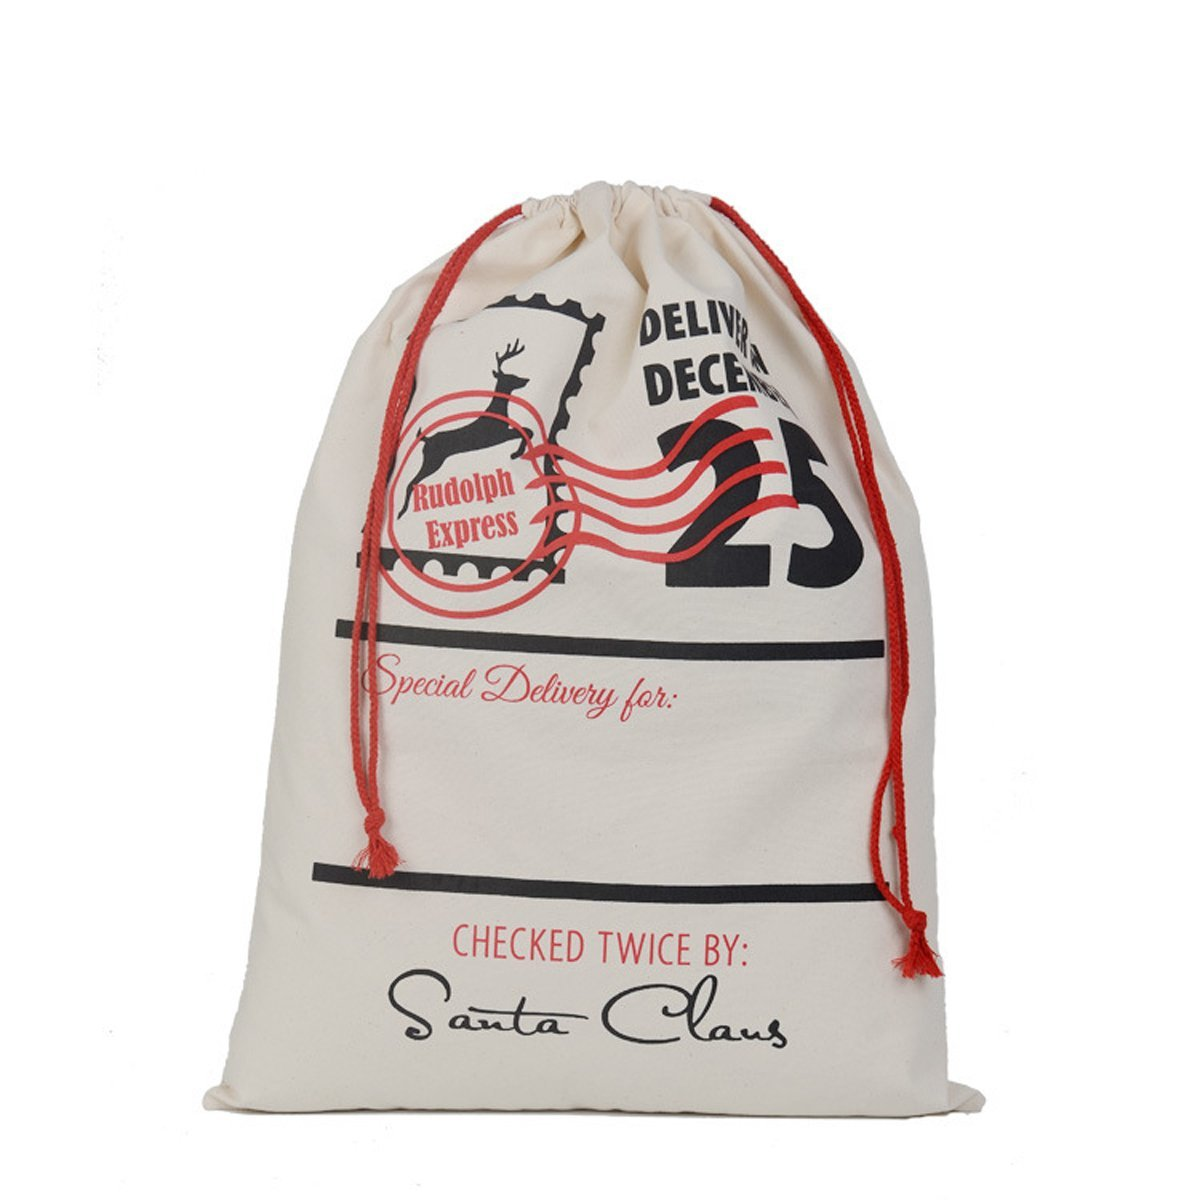 Welldone Canvas Santa Sack Cotton Bag with Drawstring Personalized Name for Holiday Presents